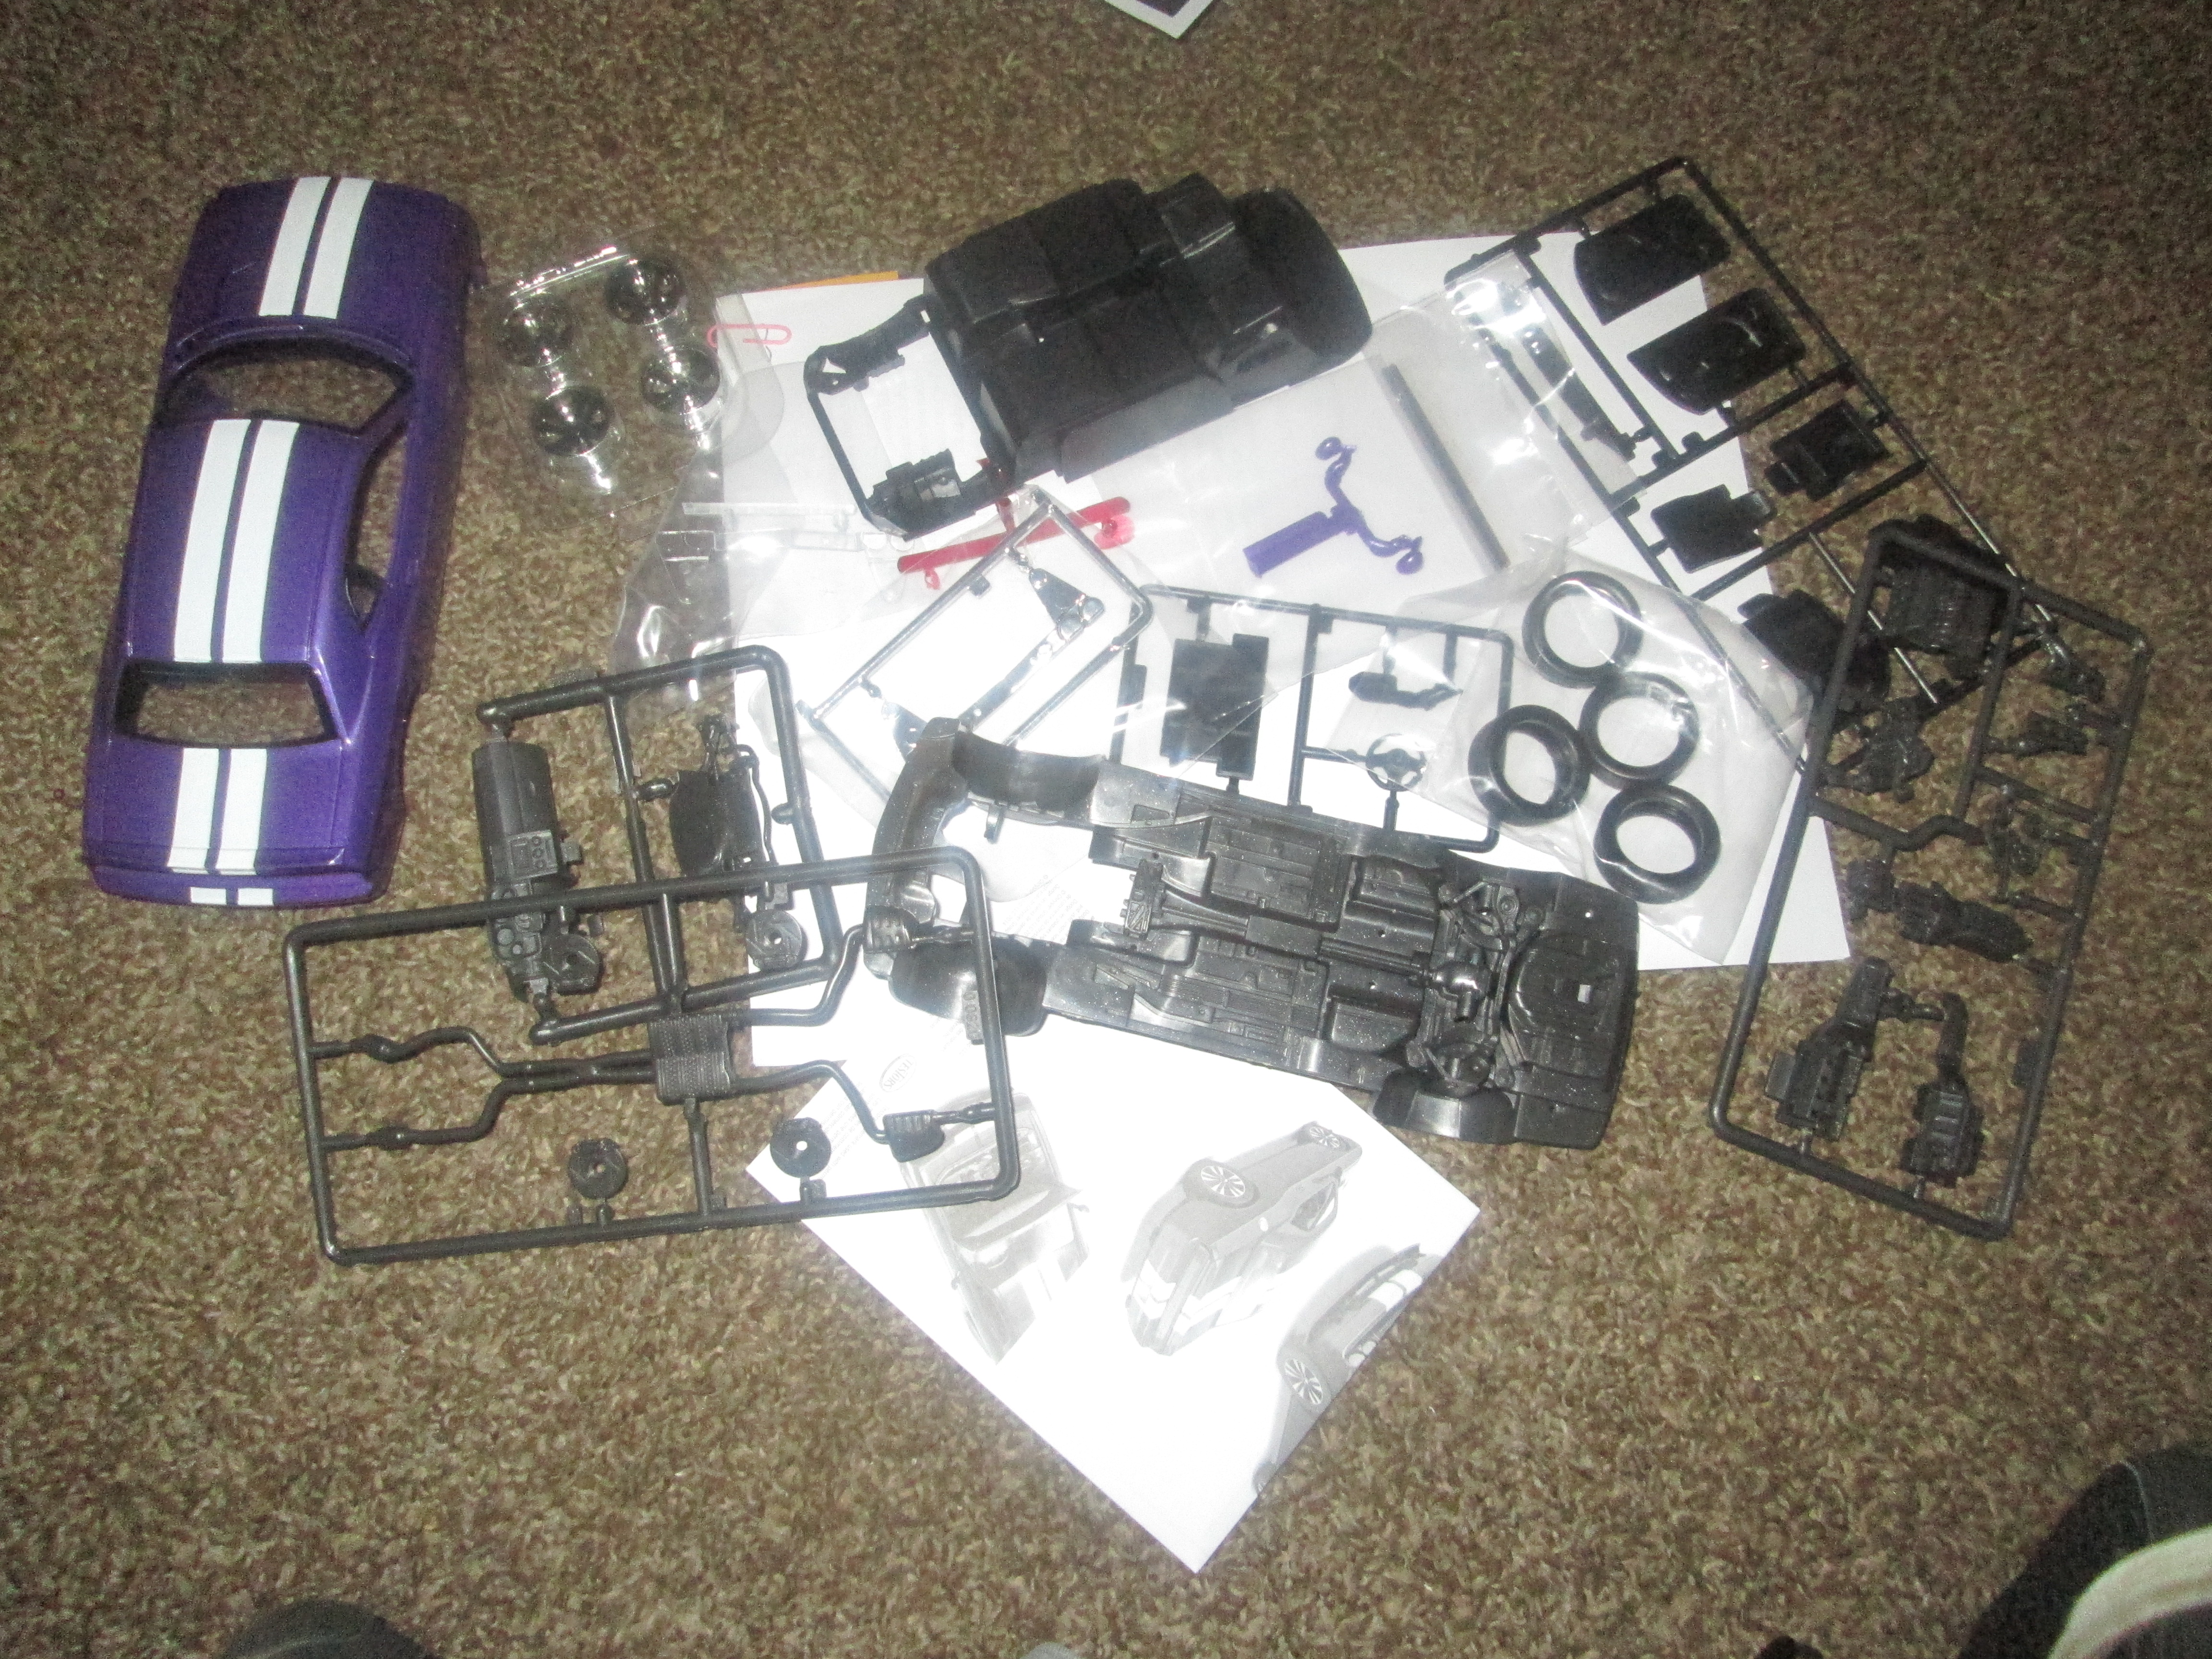 Revell Building Scale Models - BB Product Reviews